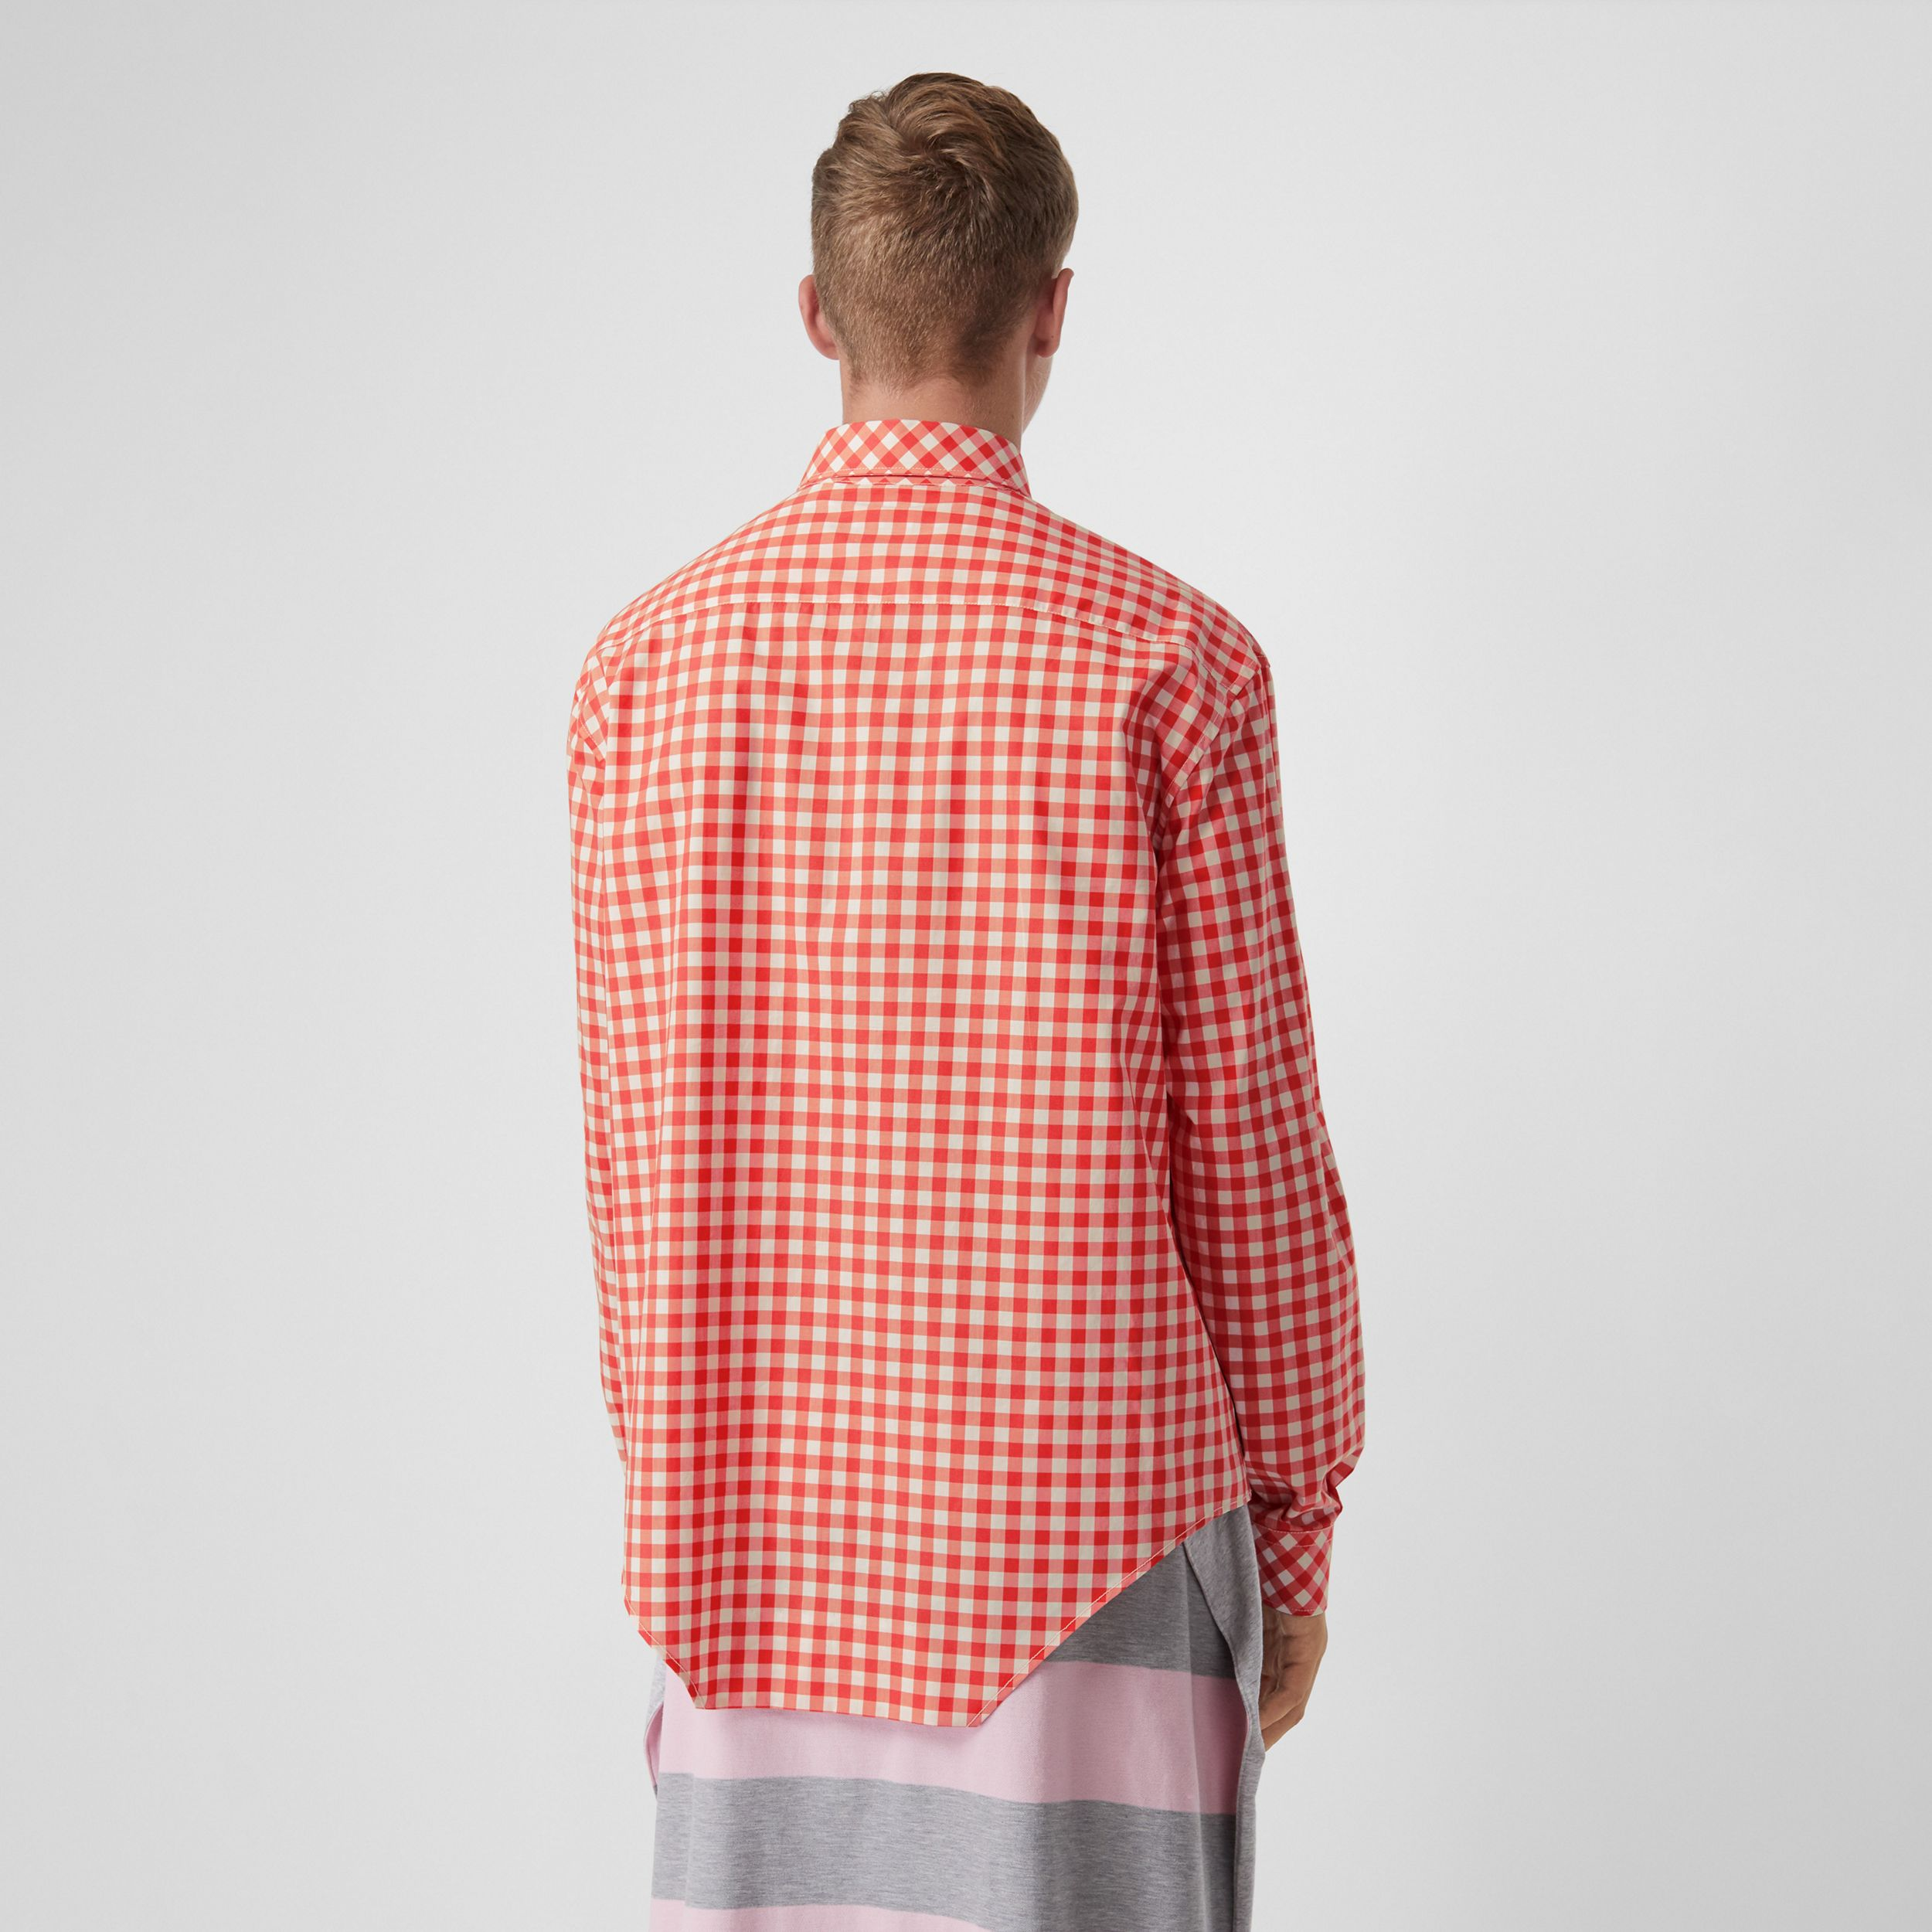 Cut-out Hem Gingham Cotton Oversized Shirt in Red - Men | Burberry United Kingdom - 3